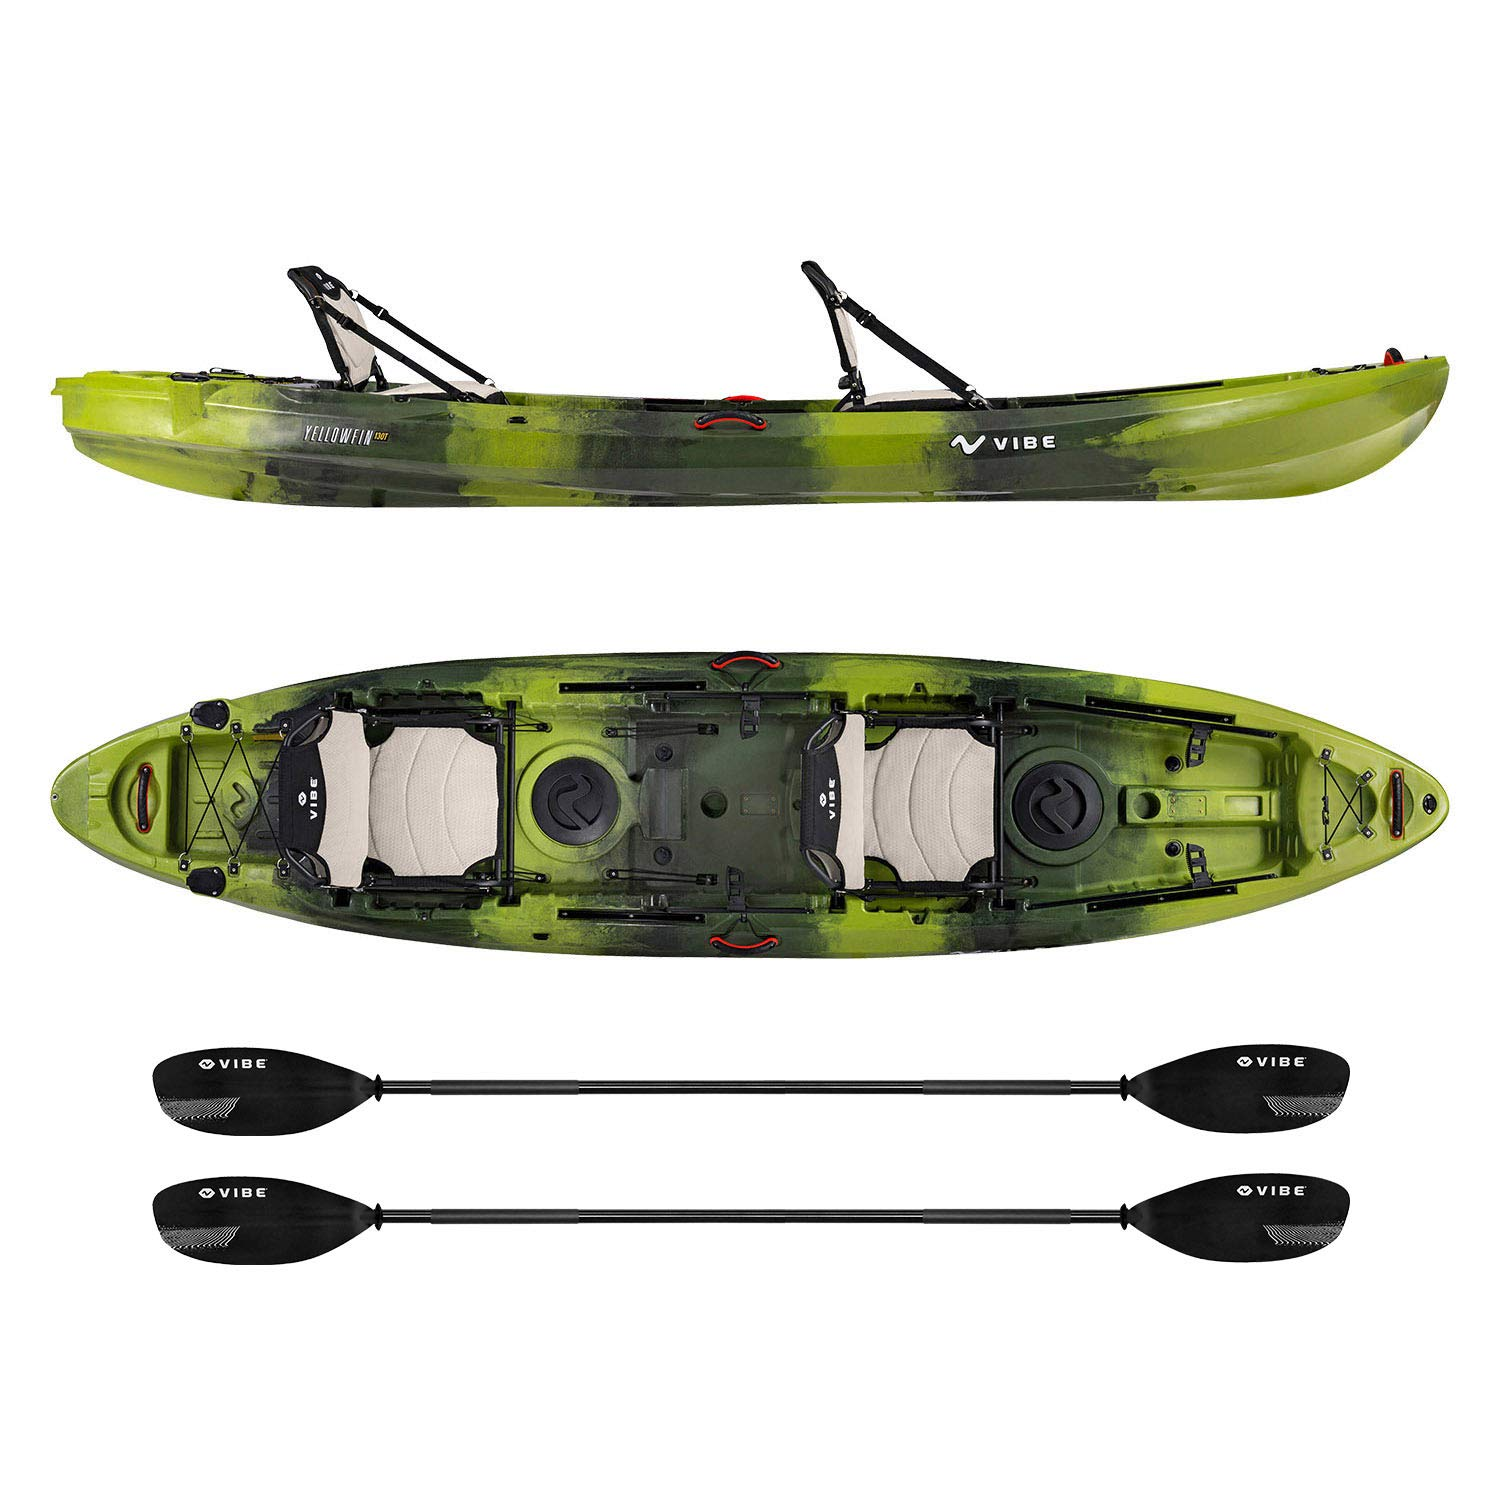 Vibe Kayaks Yellowfin 130t 13 Foot Tandem Angler And Recreational Two Person Sit On Top Fishing Kayak Moss Camo With 2 Paddles And 2 Hero Comfort